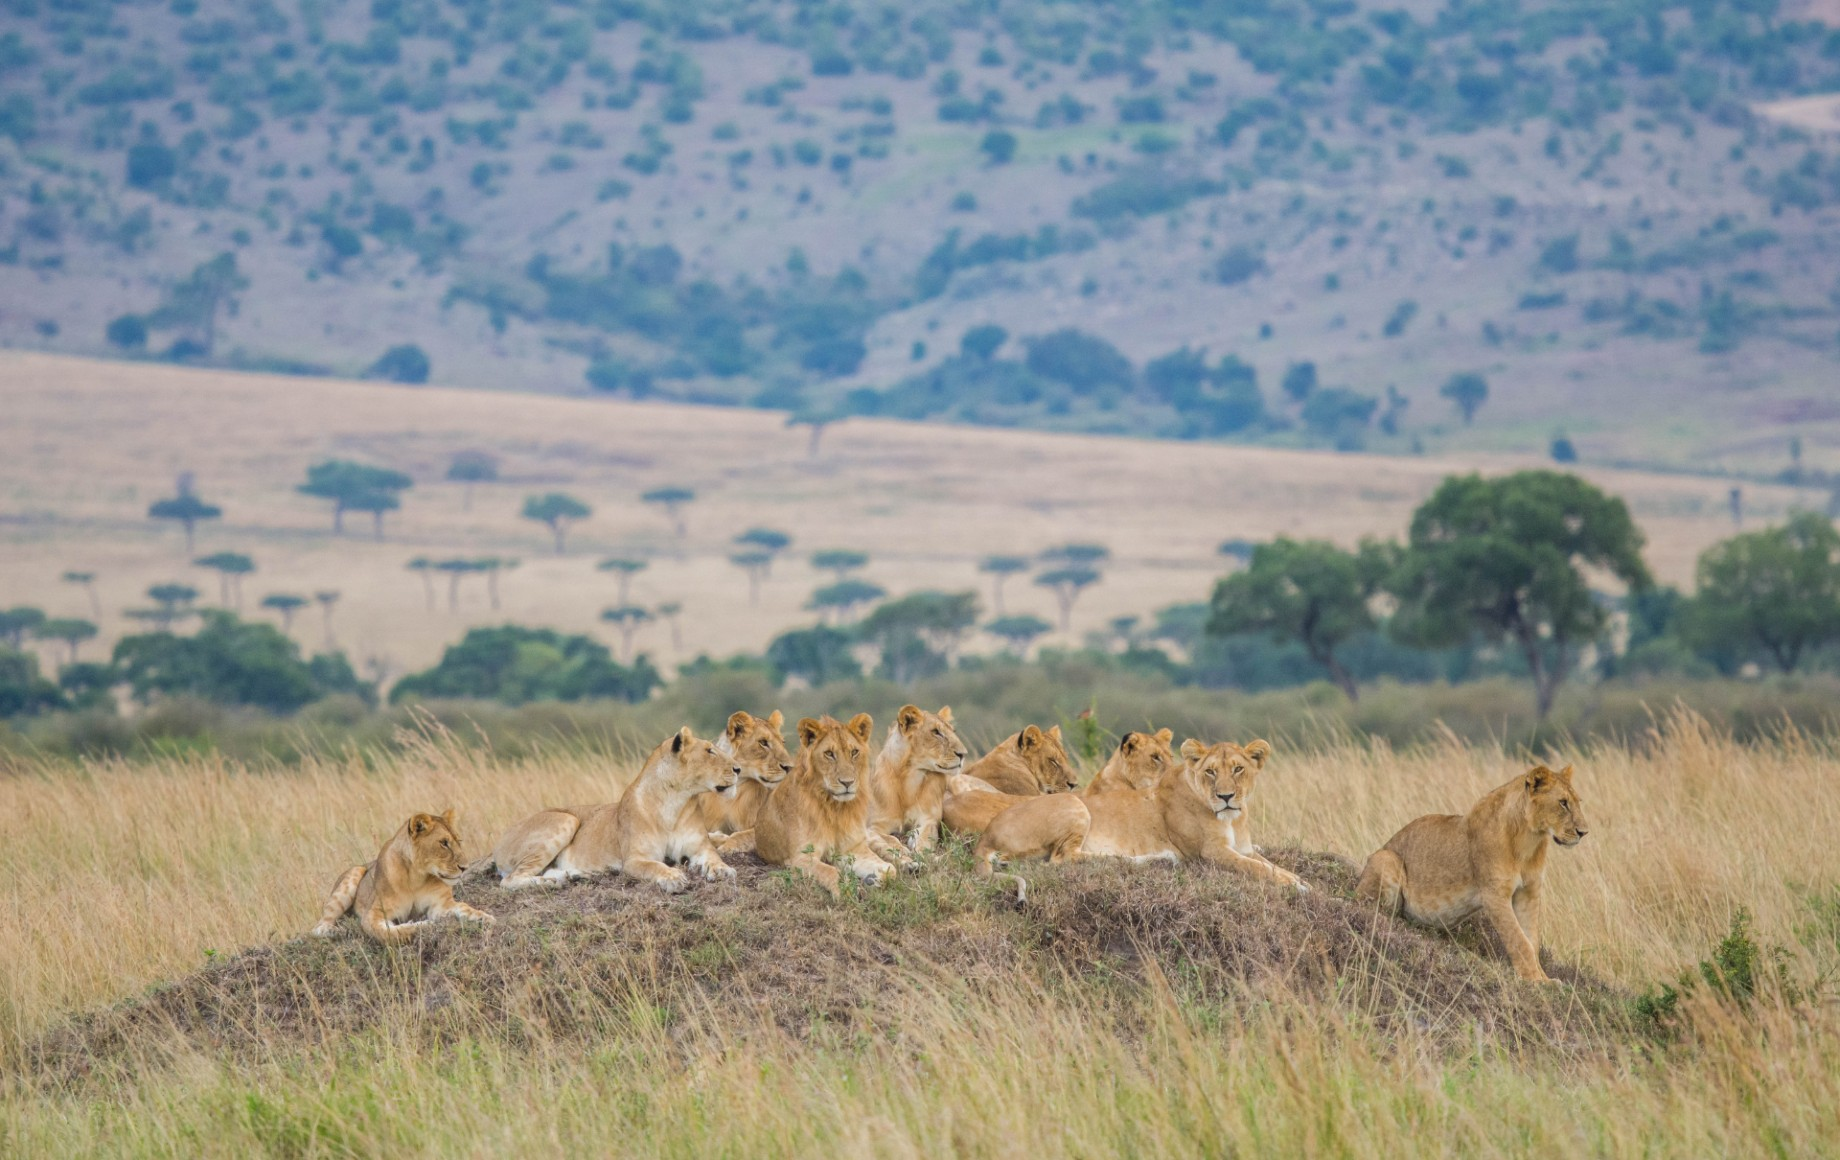 A number of lions on a rock